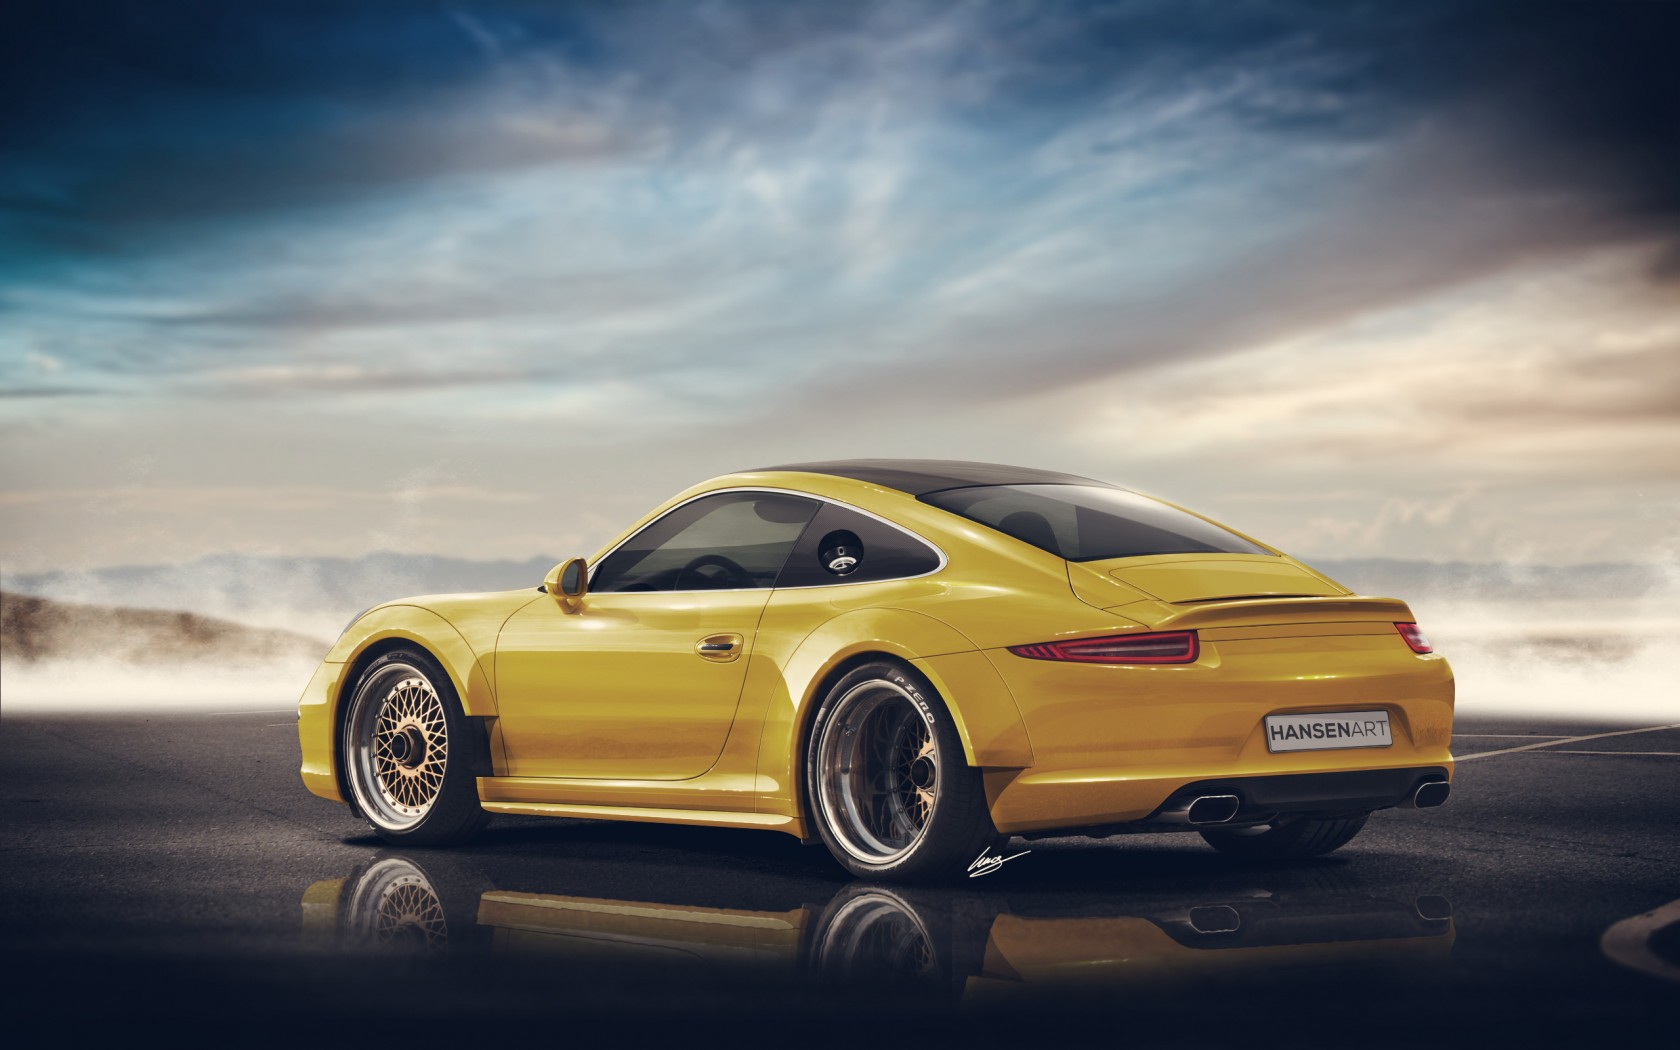 Porsche 911 Widebody Wallpaper | HD Car Wallpapers | ID #5694